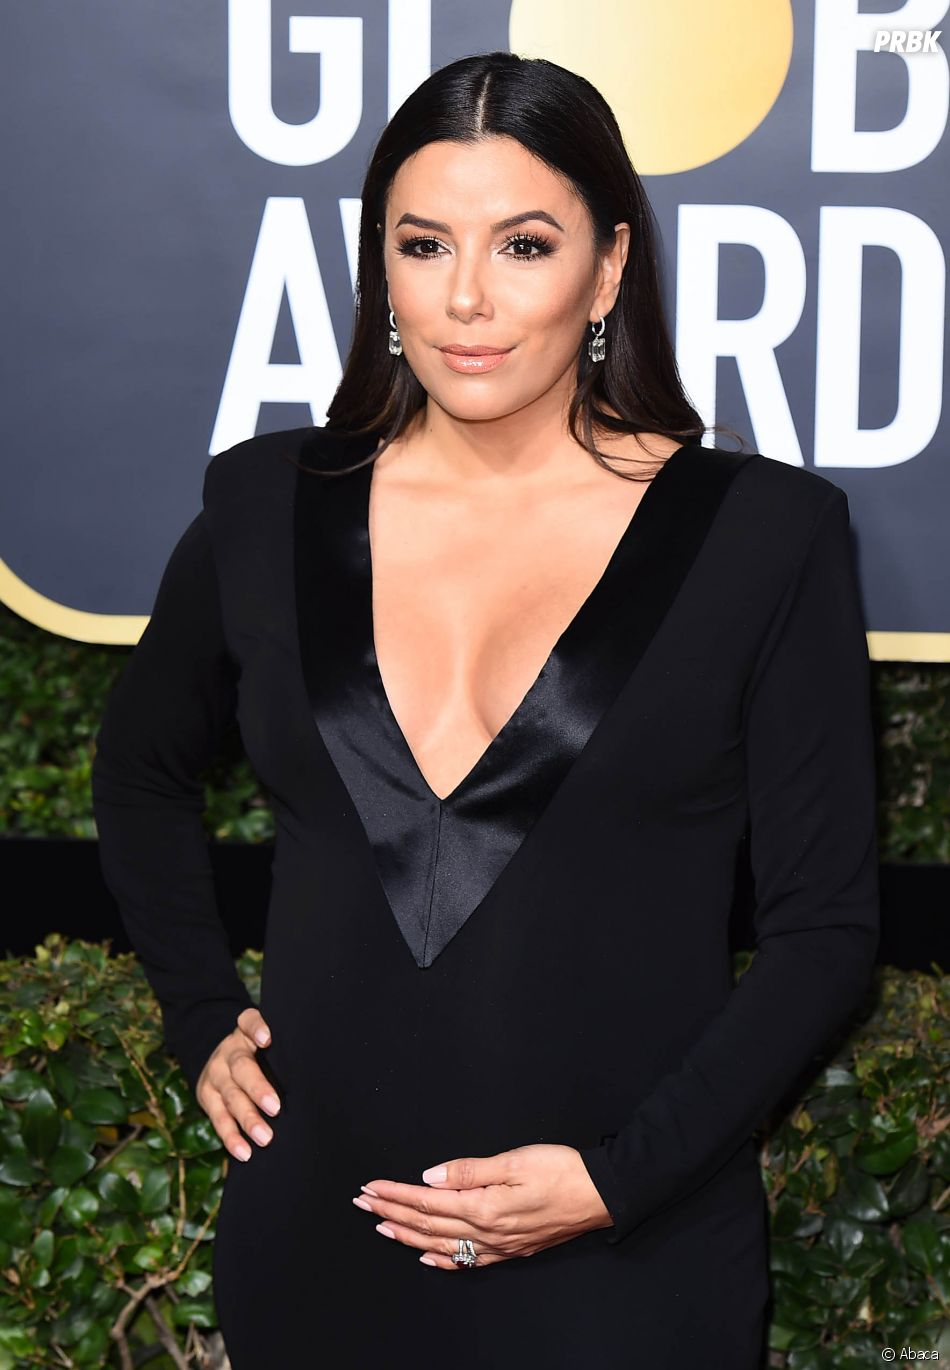 eva longoria enceinte sur le tapis rouge des golden globes 2018 le 7 janvier los angeles. Black Bedroom Furniture Sets. Home Design Ideas